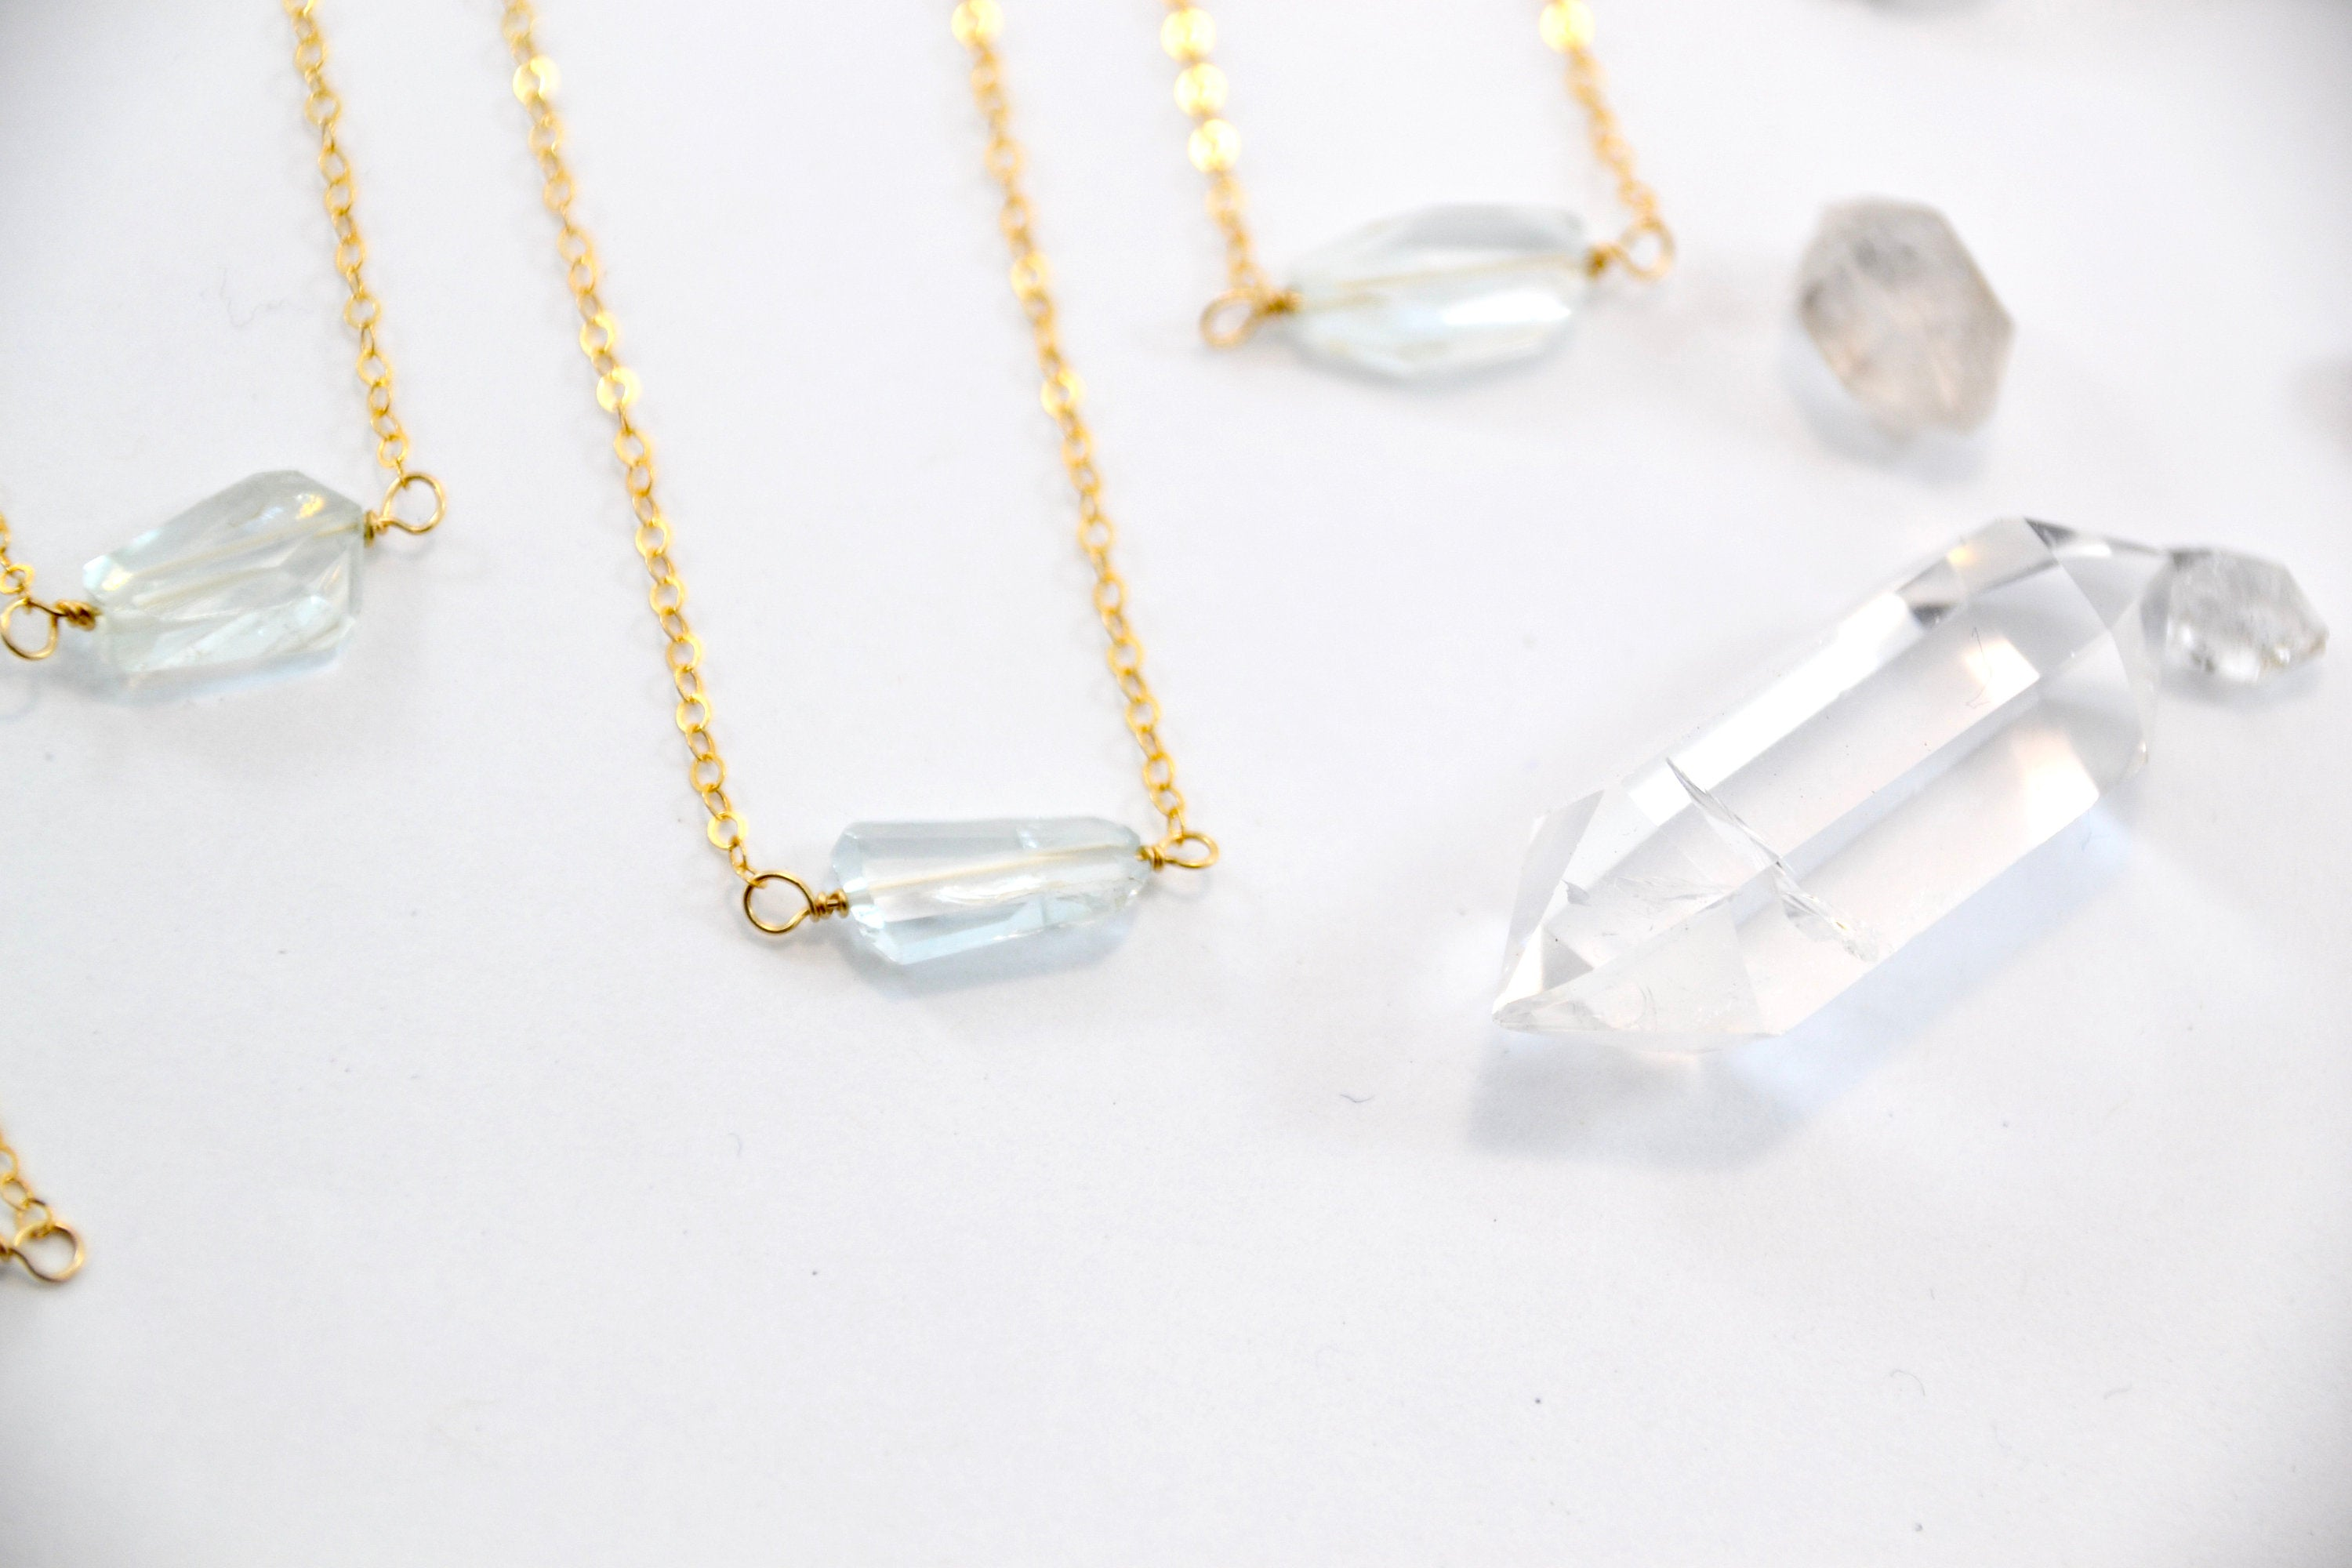 14K GF Dainty Aquamarine Necklace